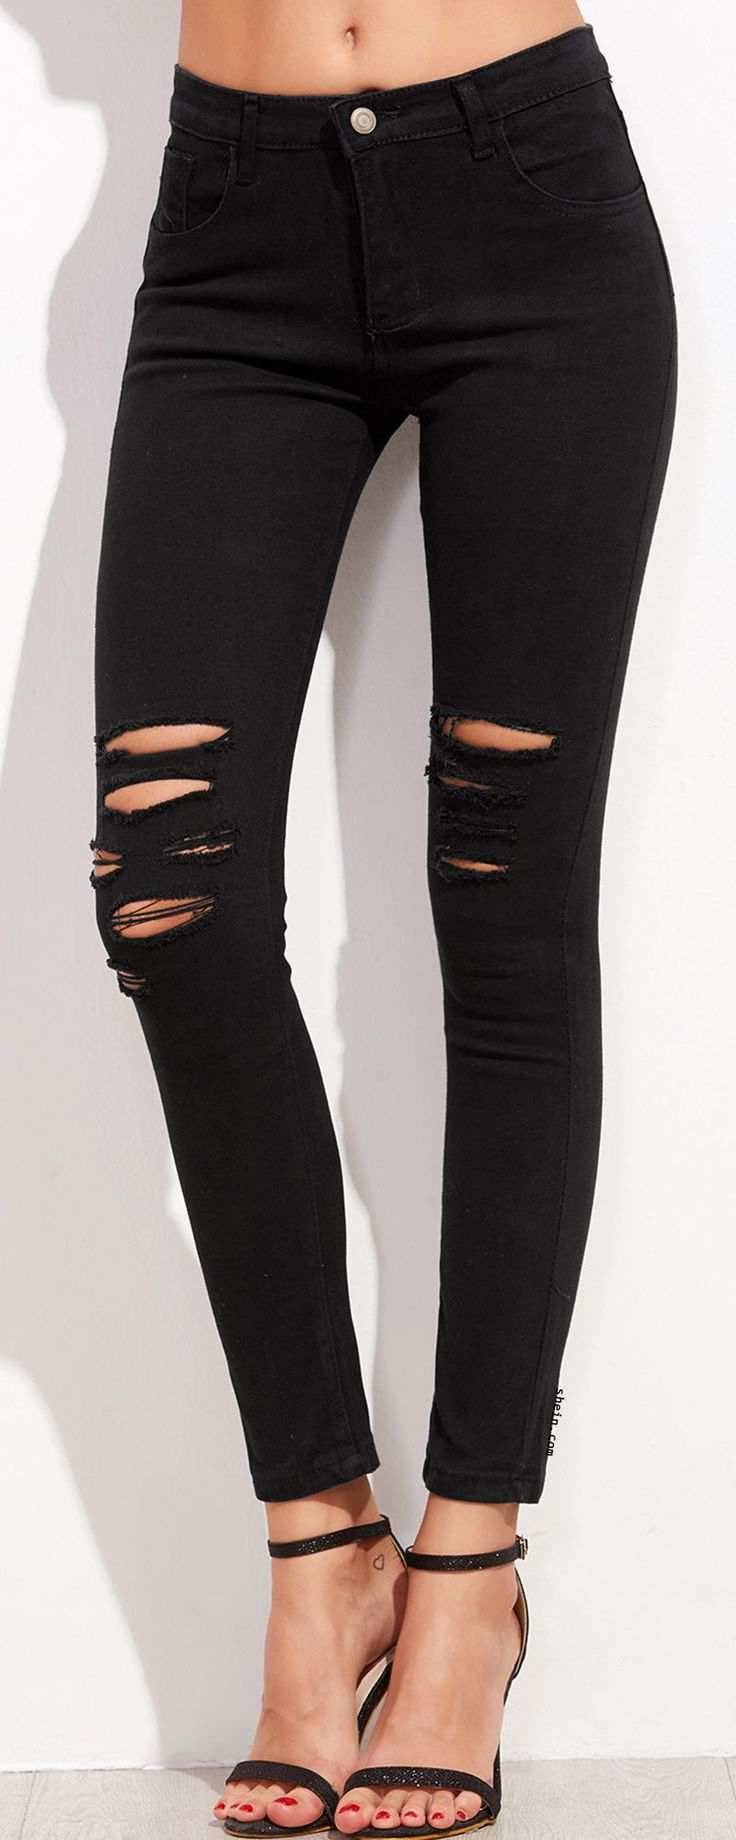 1000  ideas about Black Ripped Jeans on Pinterest | Outfits with